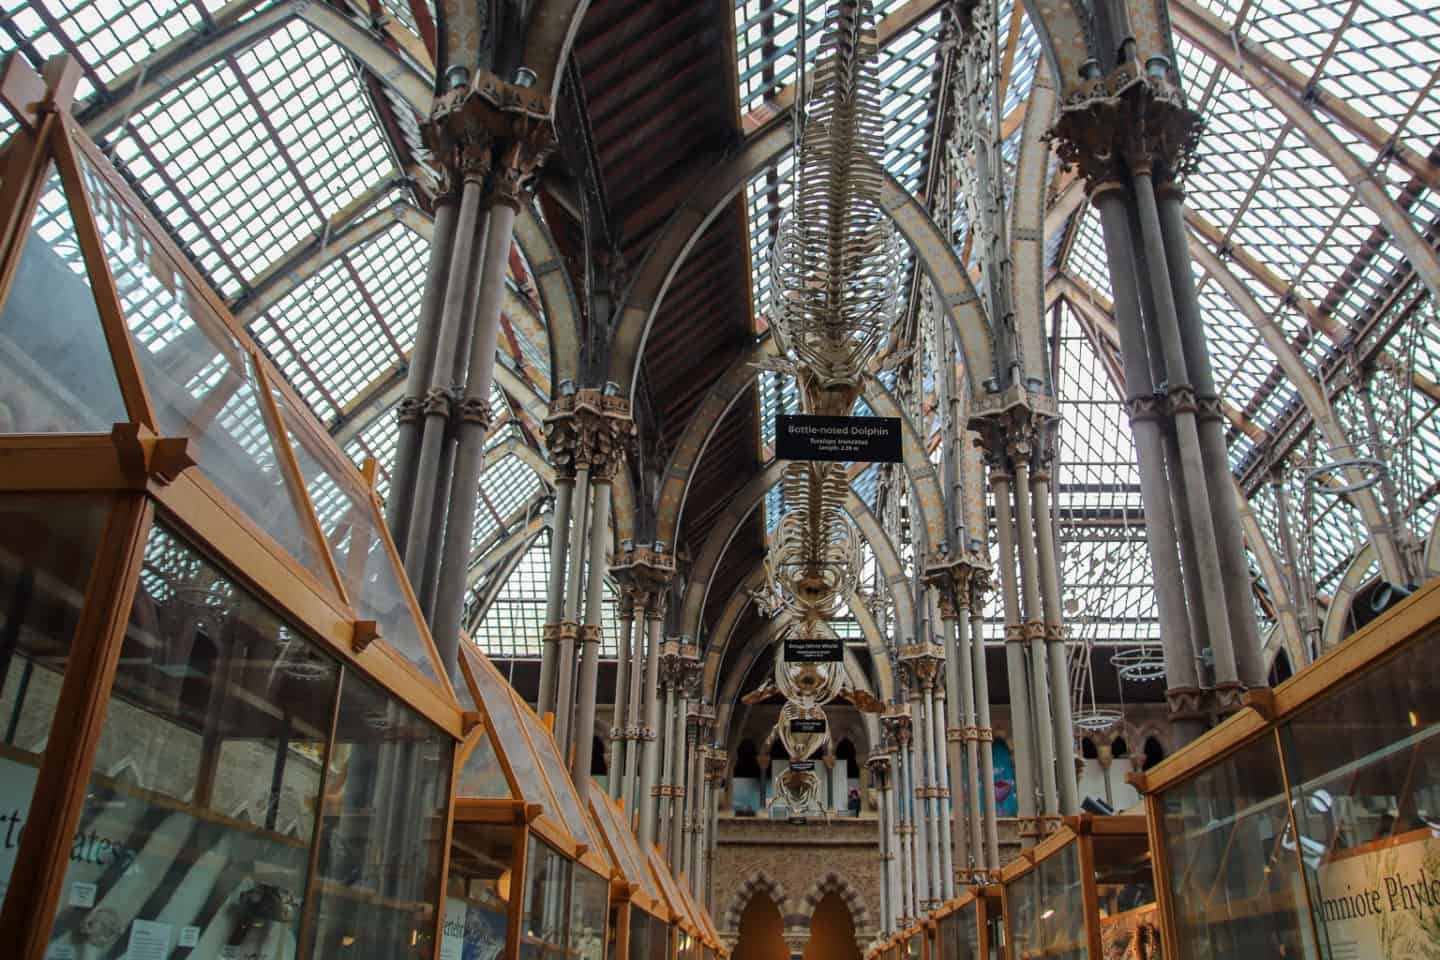 Skeletons at the Oxford Natural History Museum